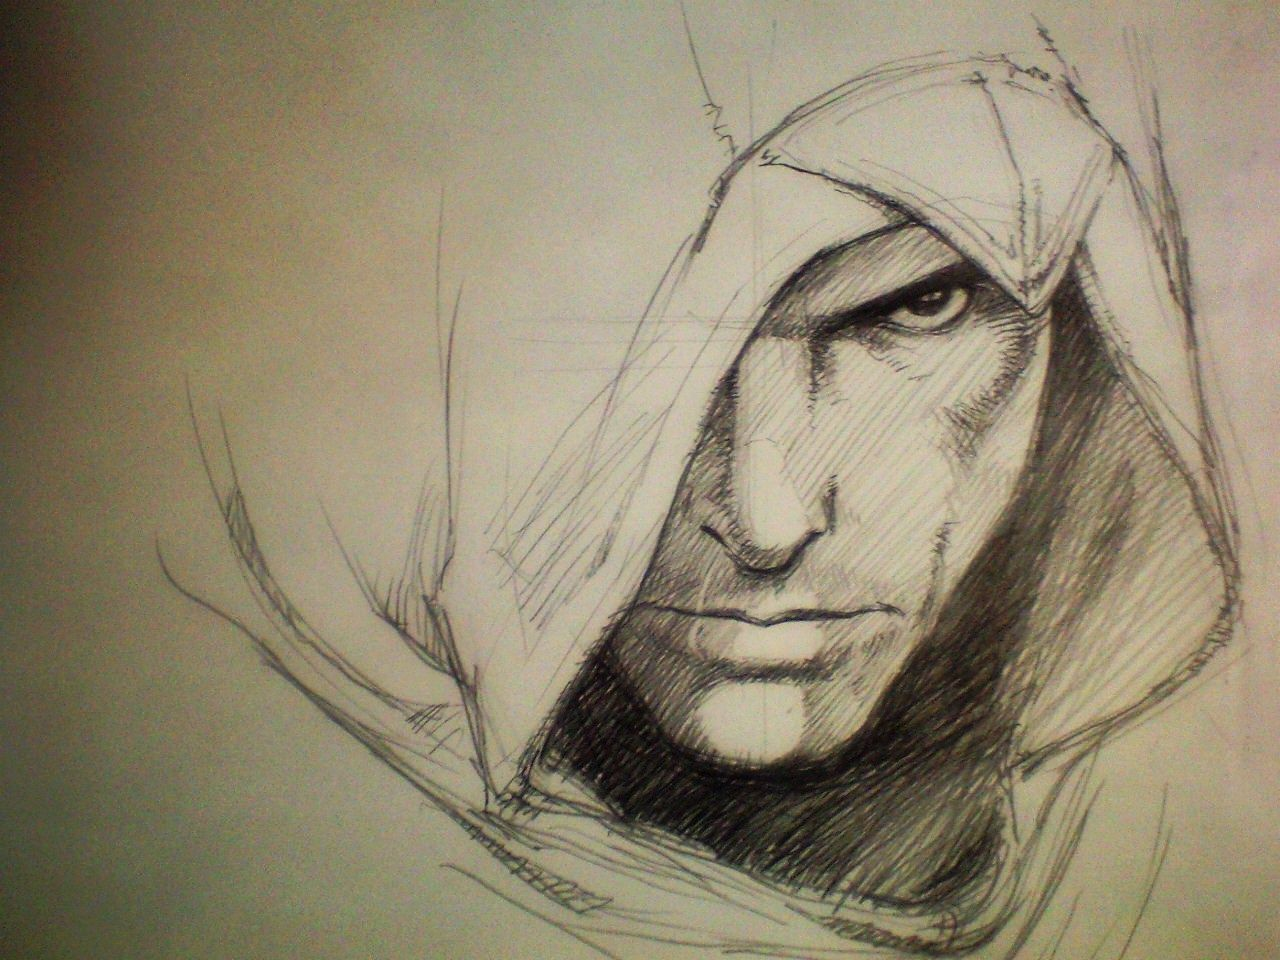 Everything Assassin S Creed Dessin Croquis Crayon Mouton Dessin The Assassin